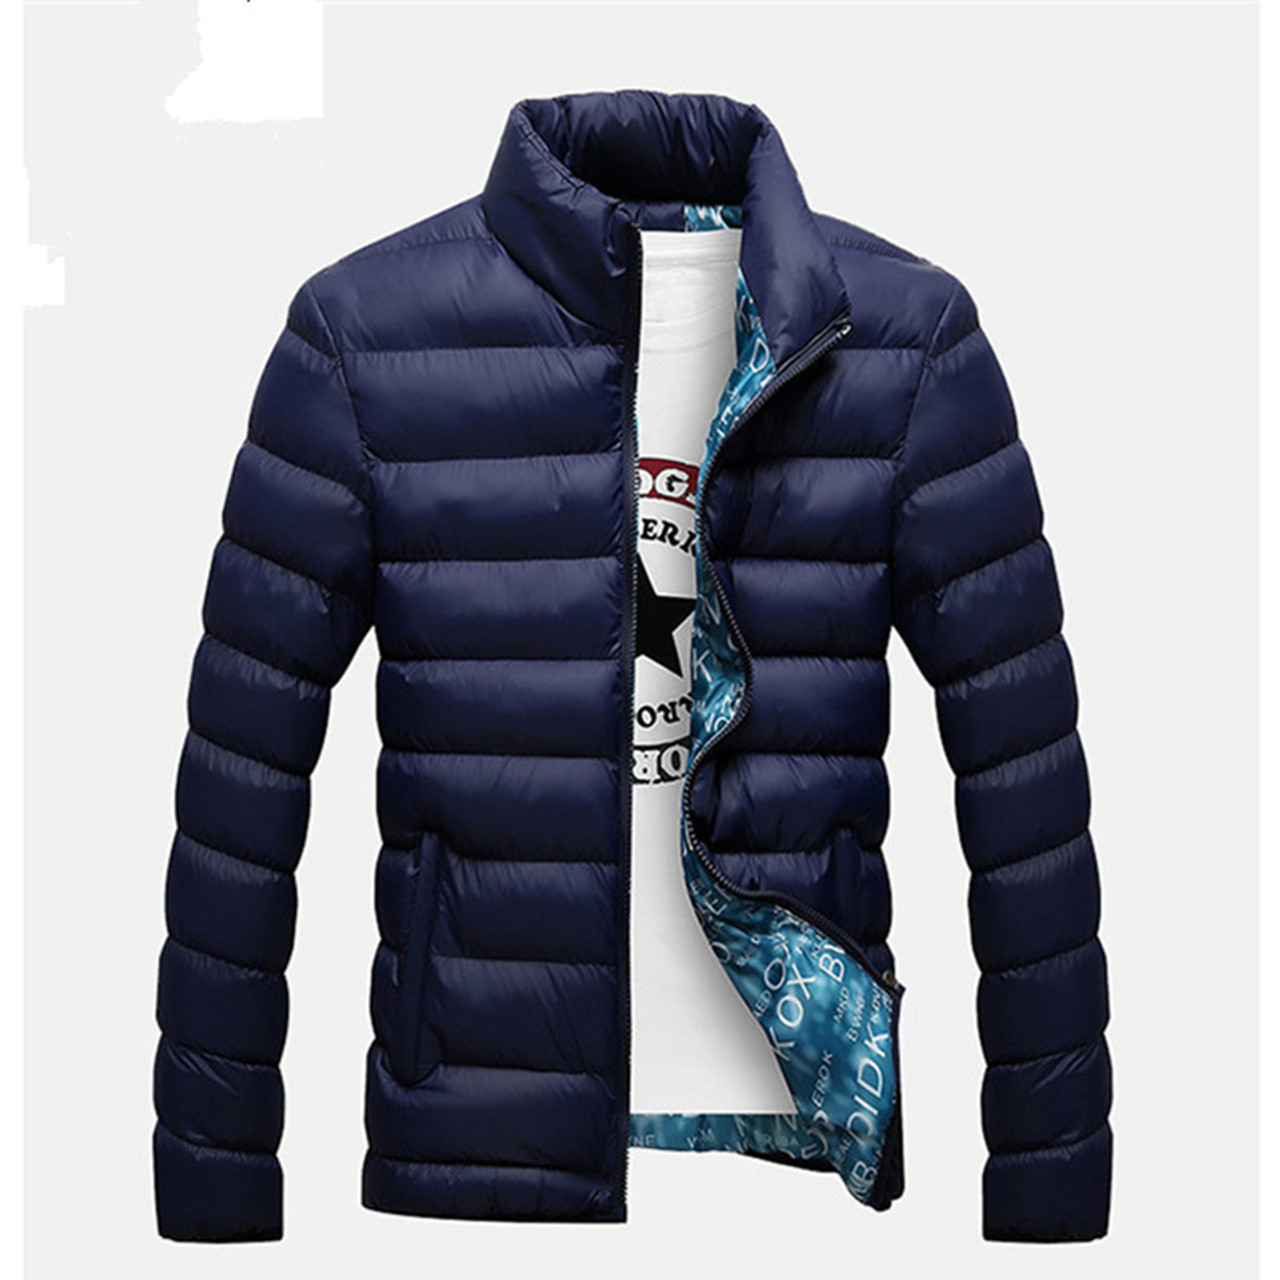 fef4b7f85b0 ... 2018New Jackets Parka Men Hot Sale Quality Autumn Winter Warm Outwear  Brand Slim Mens Coats Casual ...